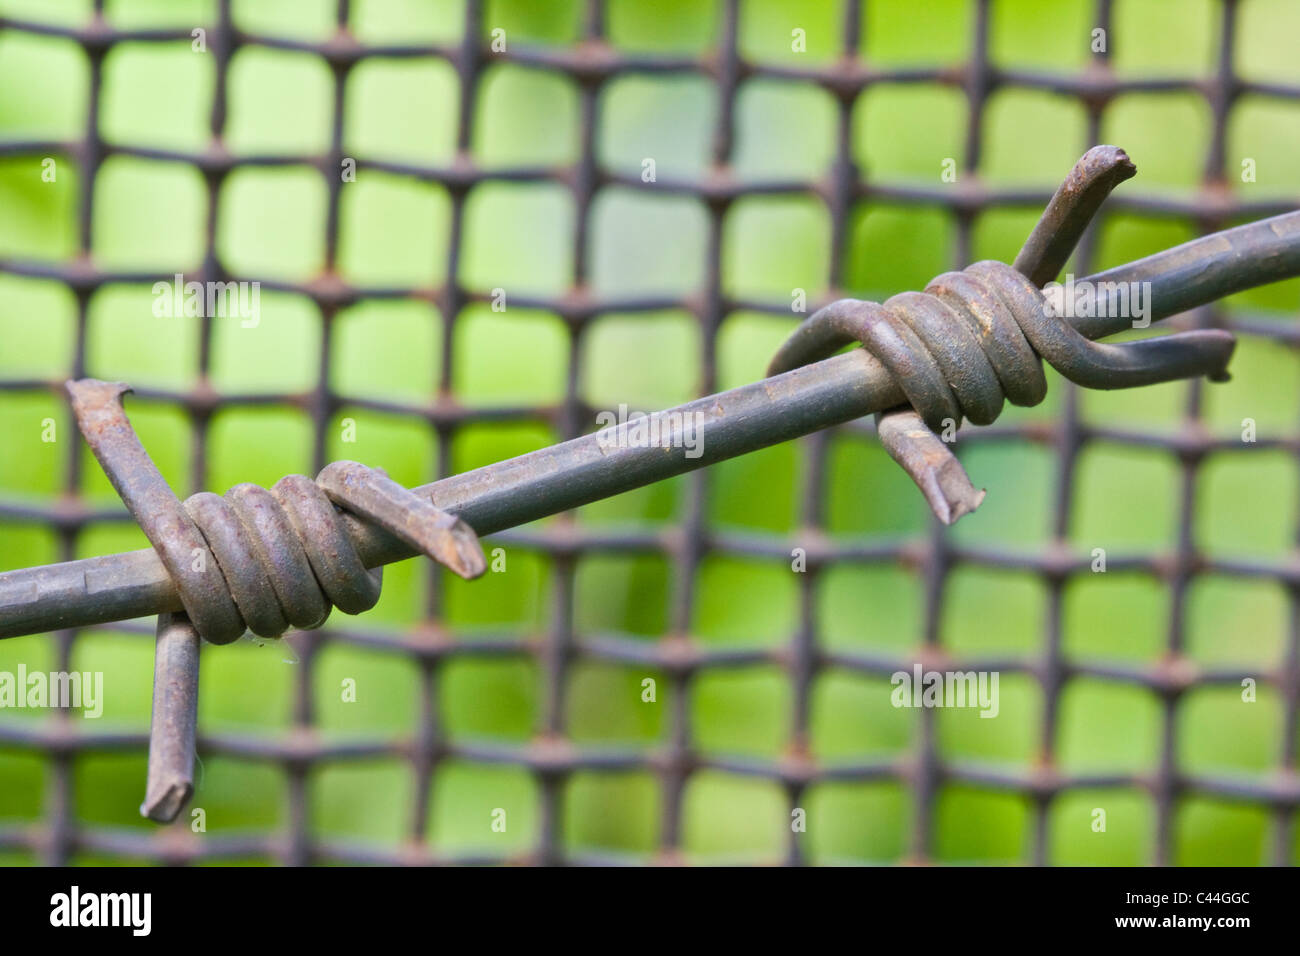 barbed wire and metal lattice against green grass and foliage - Stock Image